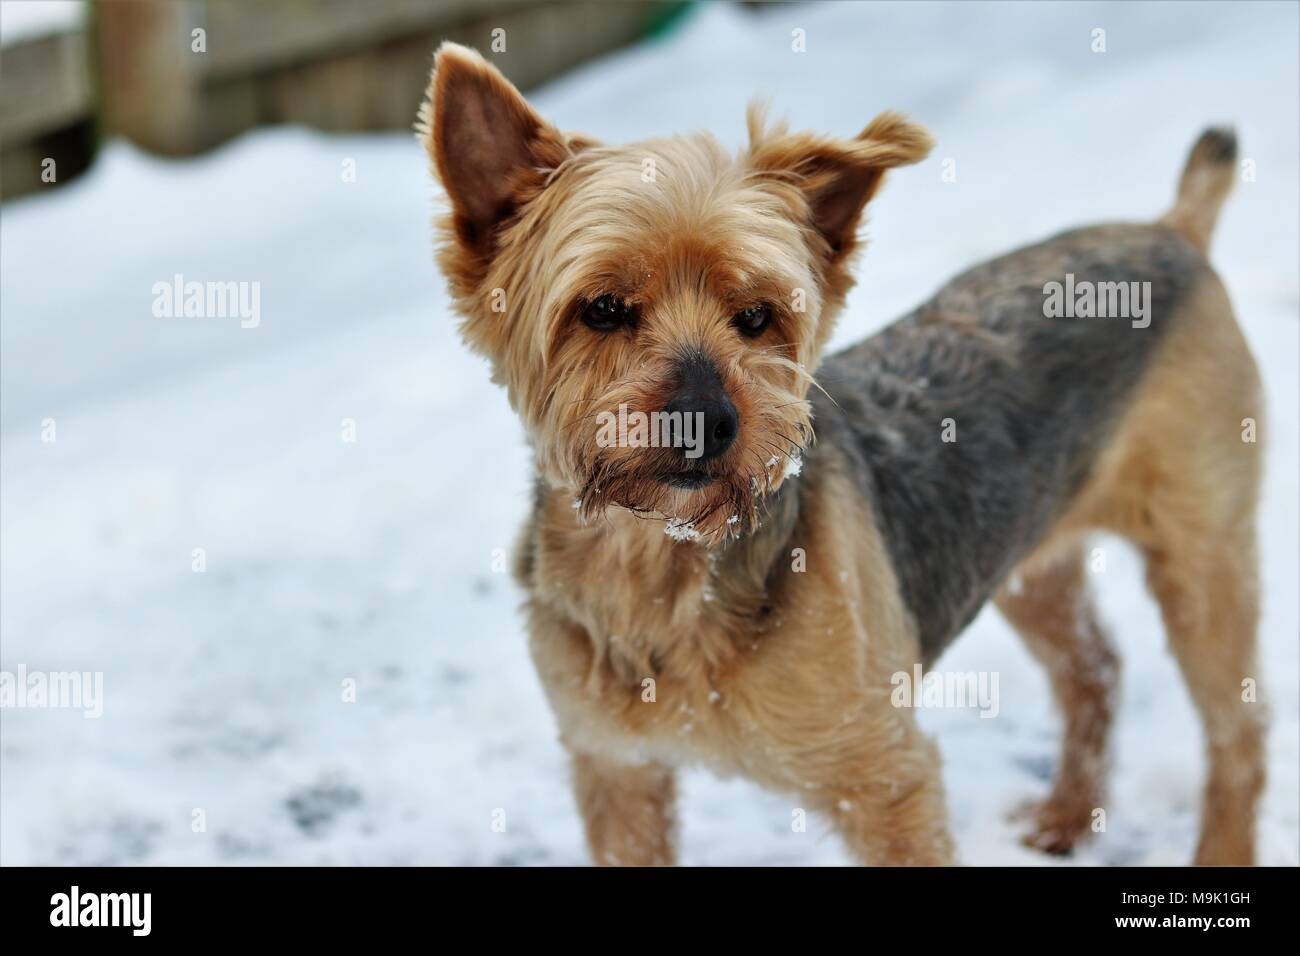 Yorkie Terrier in snow - Stock Image